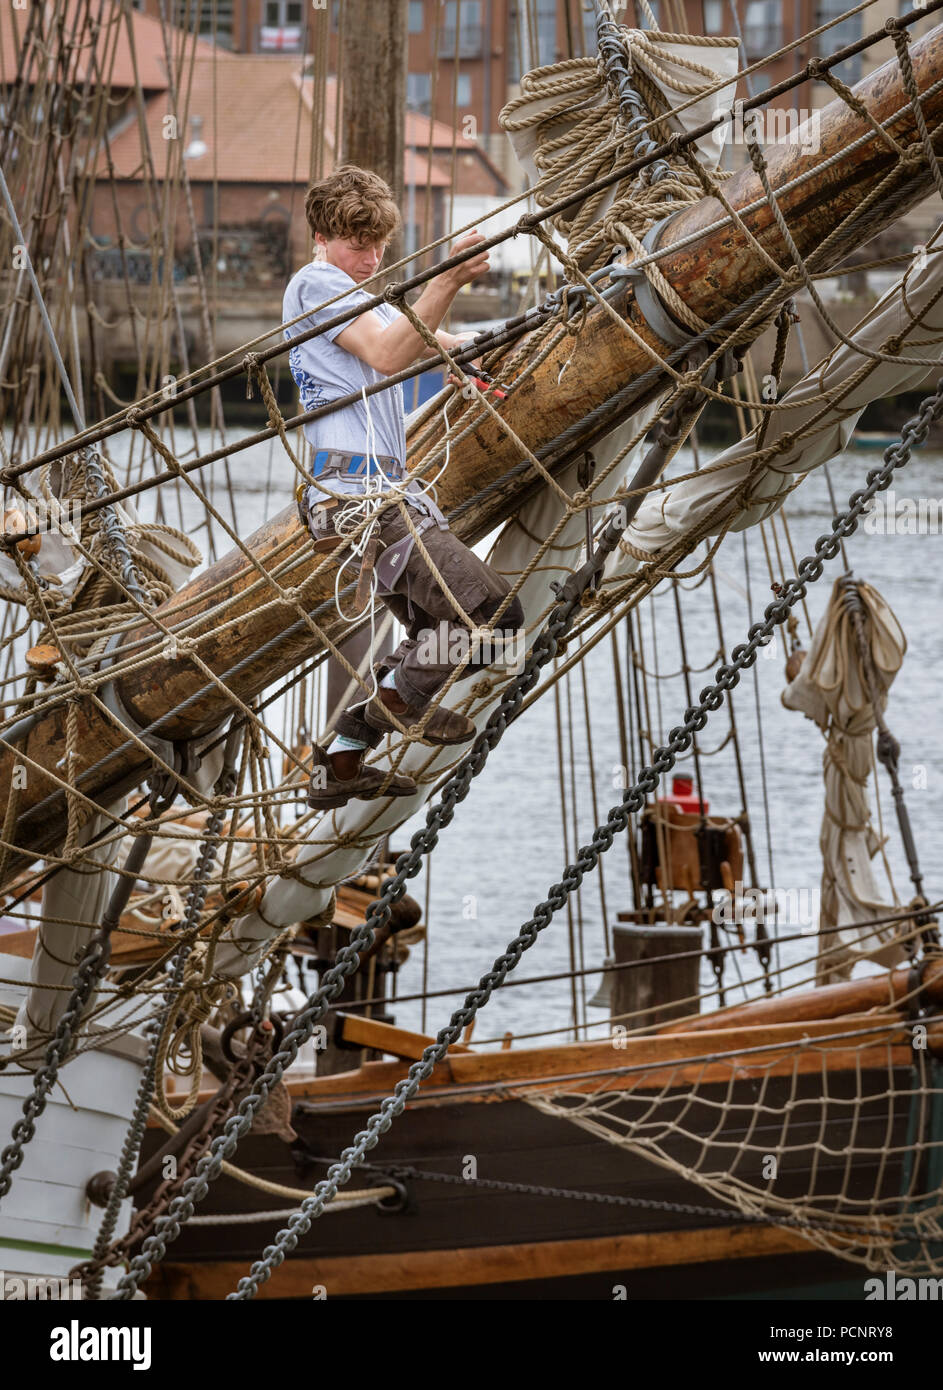 Sailor working on the rigging of a sailing ship in harbour during the 2018 Tall Ships Race - Stock Image